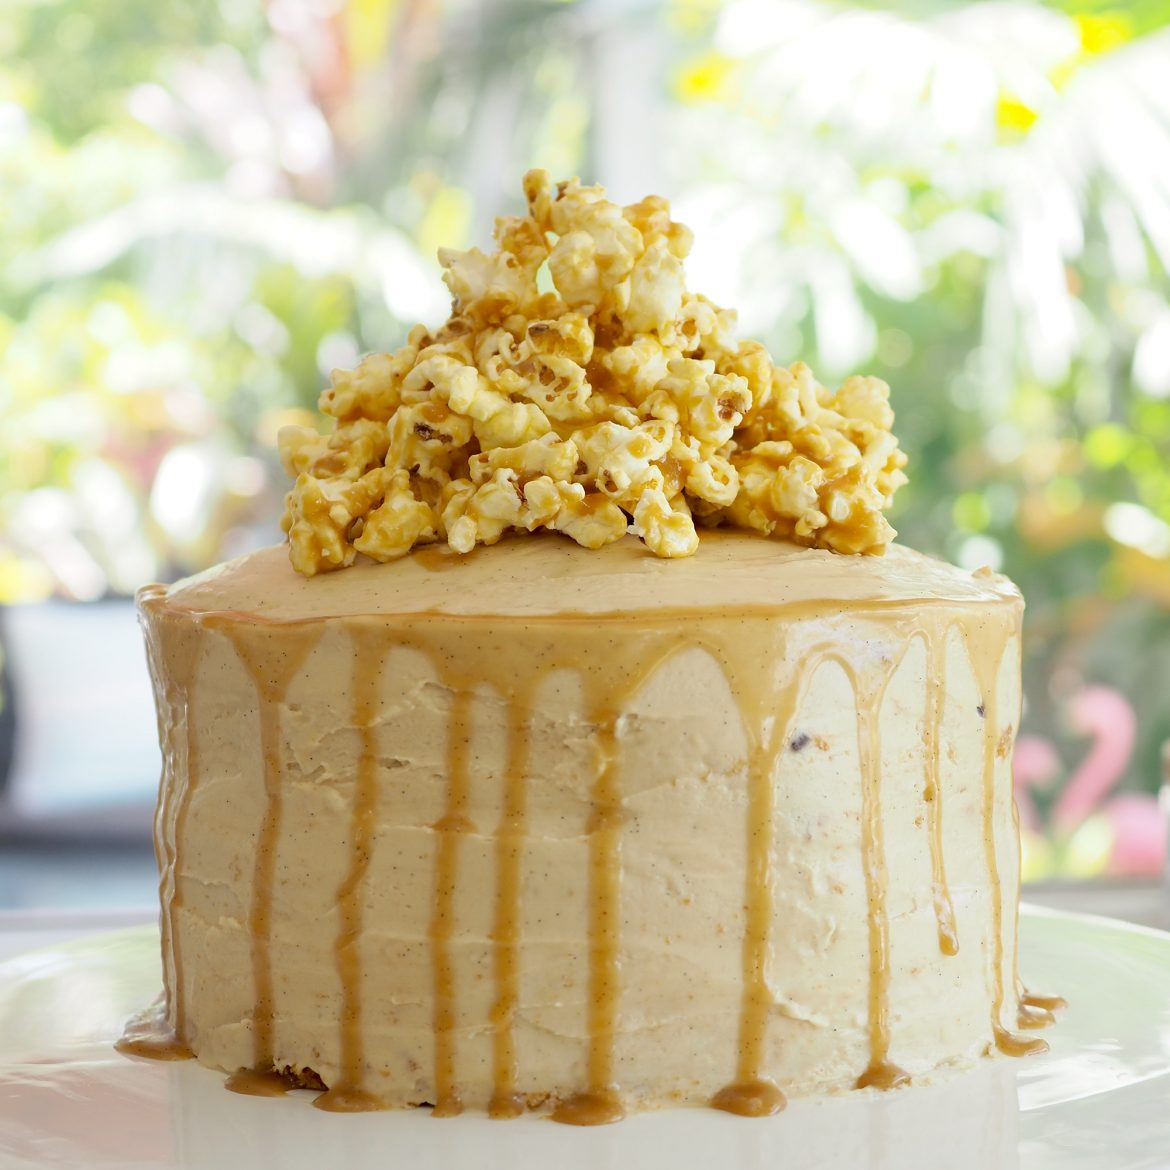 A creative way to decorate a Coles or Woolworths Mudcake which transformed into my Super Easy Salted Caramel Popcorn Cake.